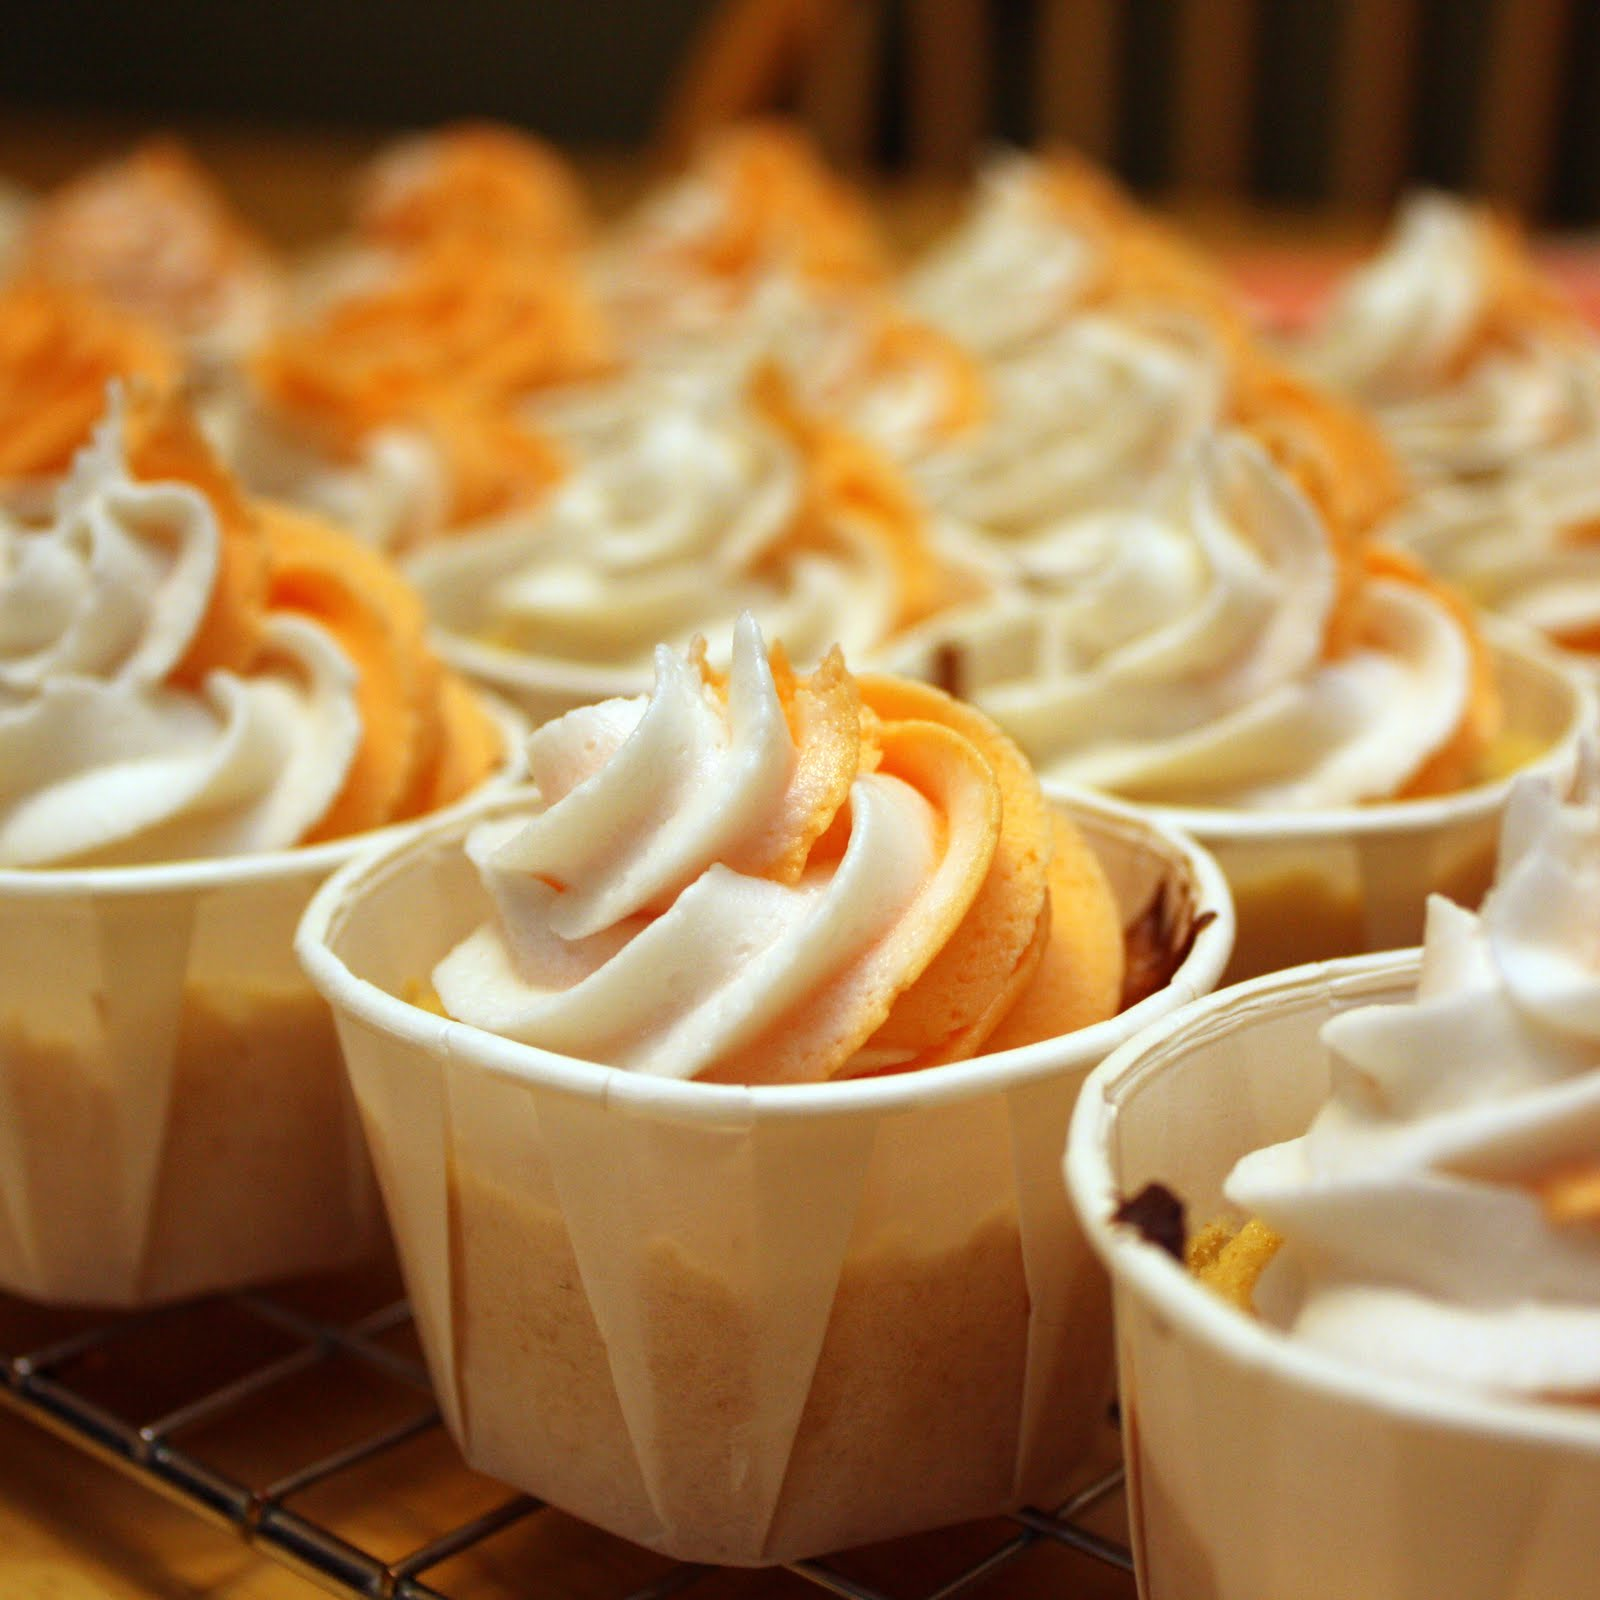 The Doctor's Dishes, Desserts & Decor: Orange Creamsicle Cupcakes